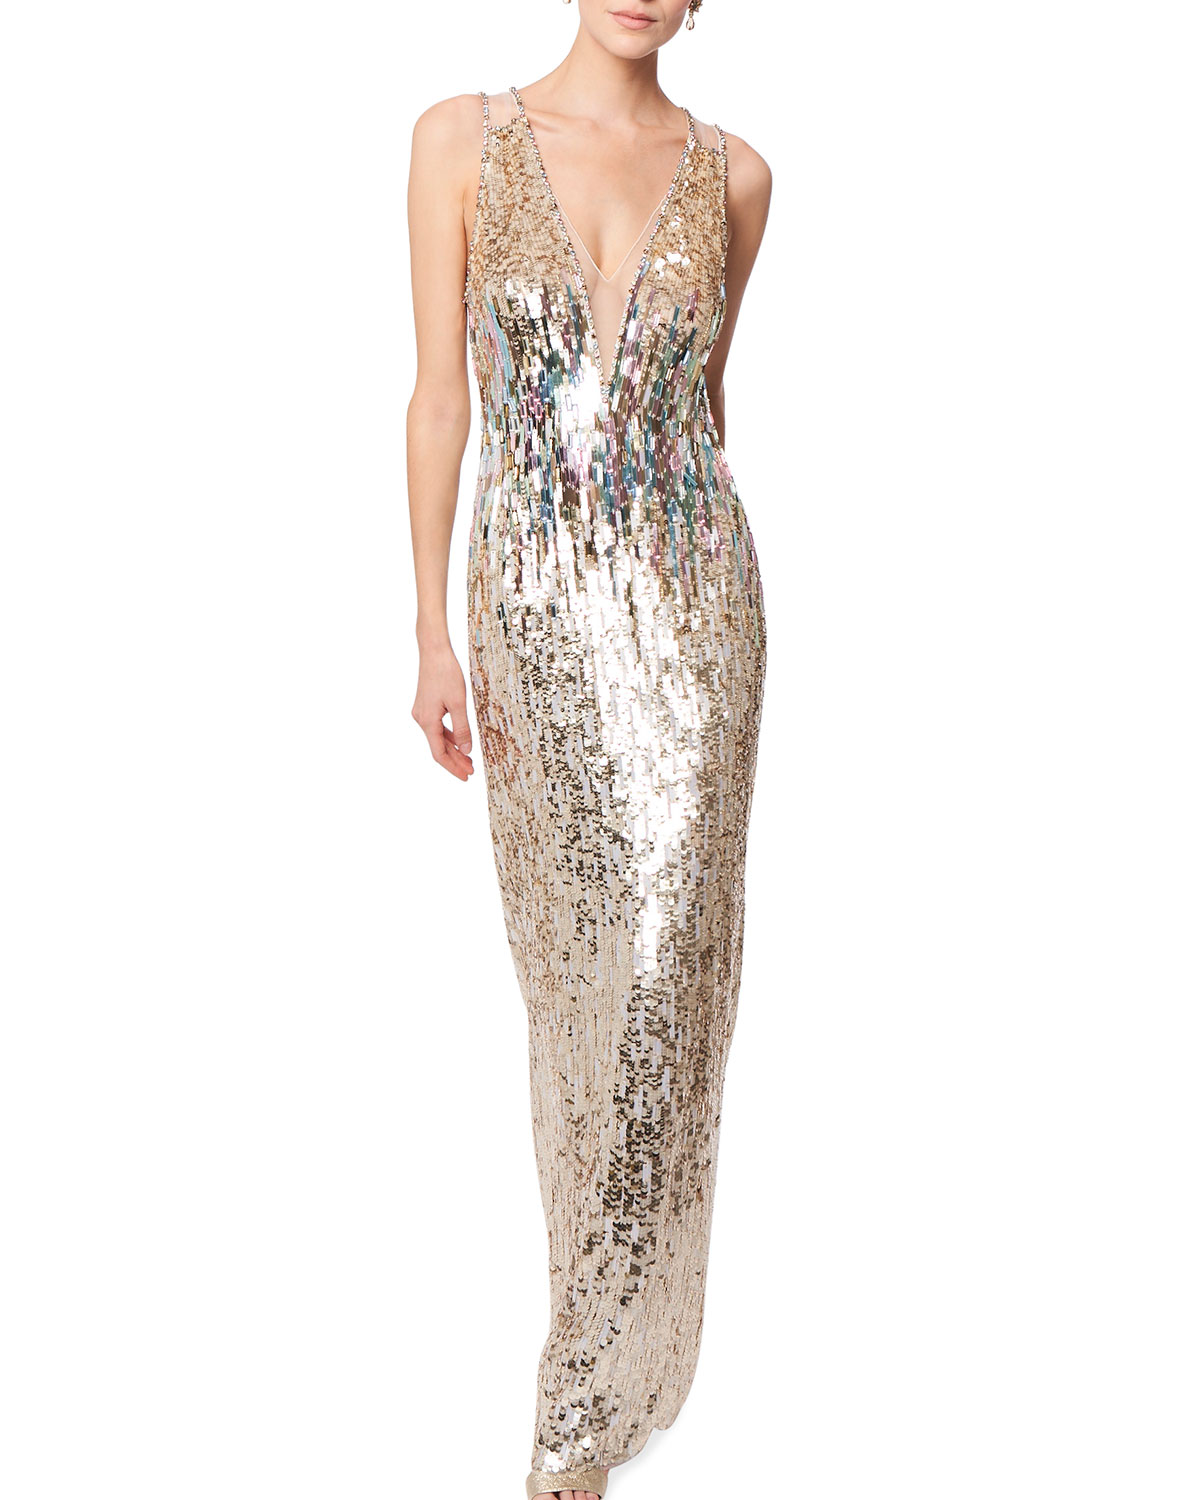 Jenny Packham MULTICOLOR BEADED PLUNGING-NECK SLEEVELESS COLUMN GOWN